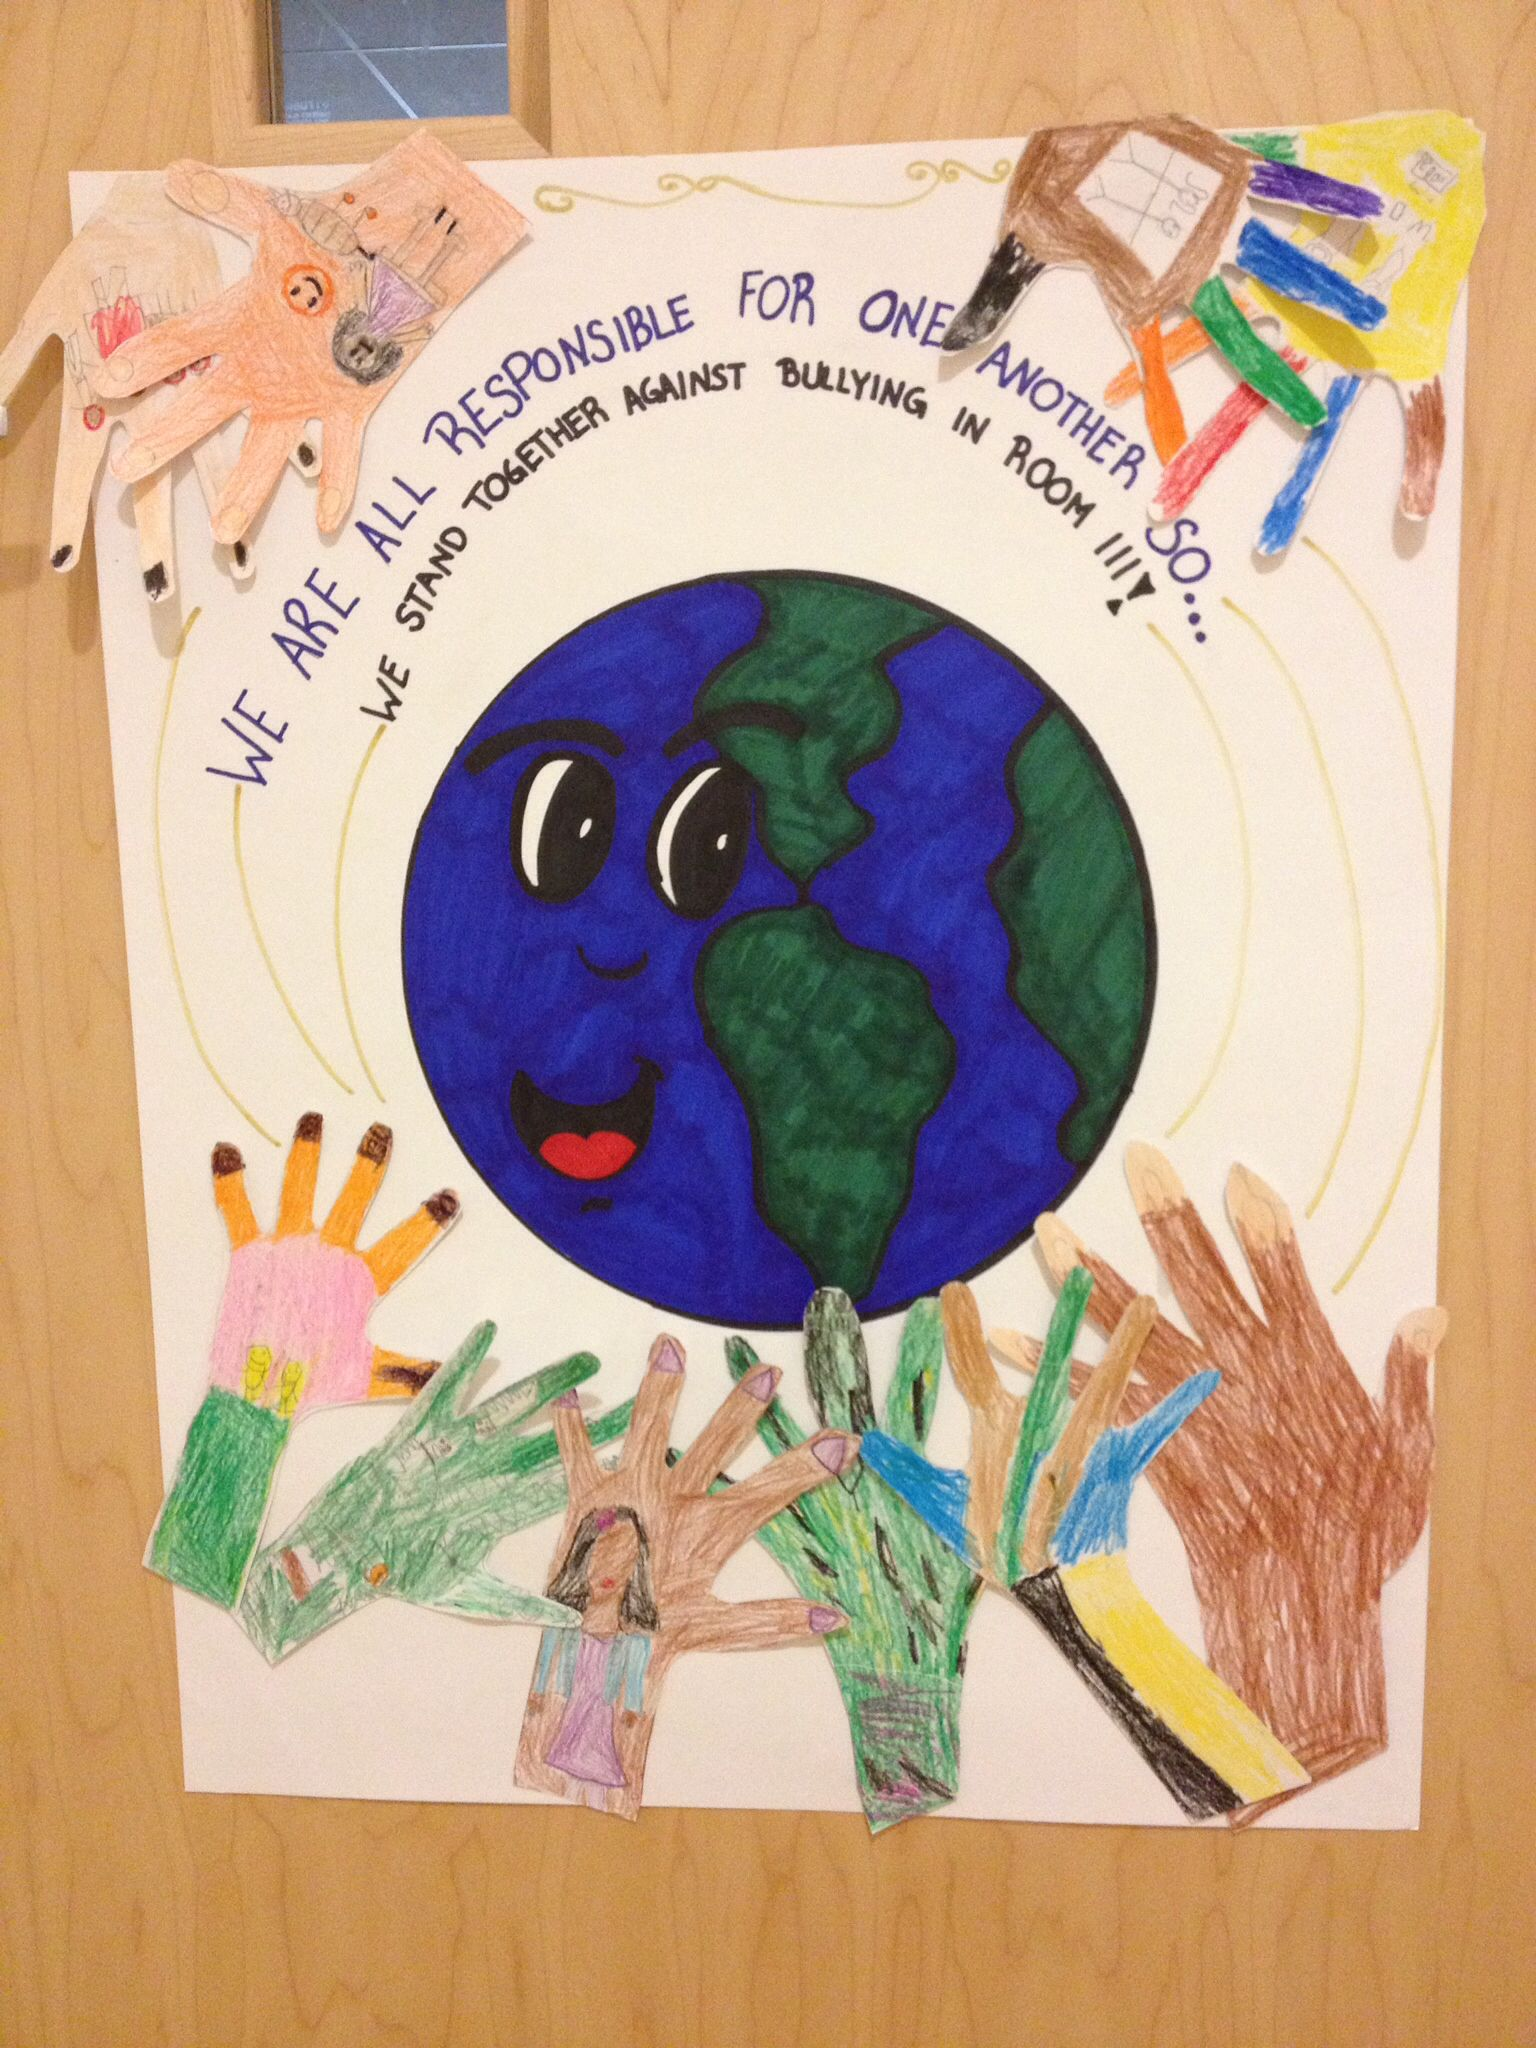 This Week Was Week Of Respect At Our School This Is The Anti Bullying Poster That My Class Made For The C Anti Bullying Posters Bullying Posters Anti Bullying